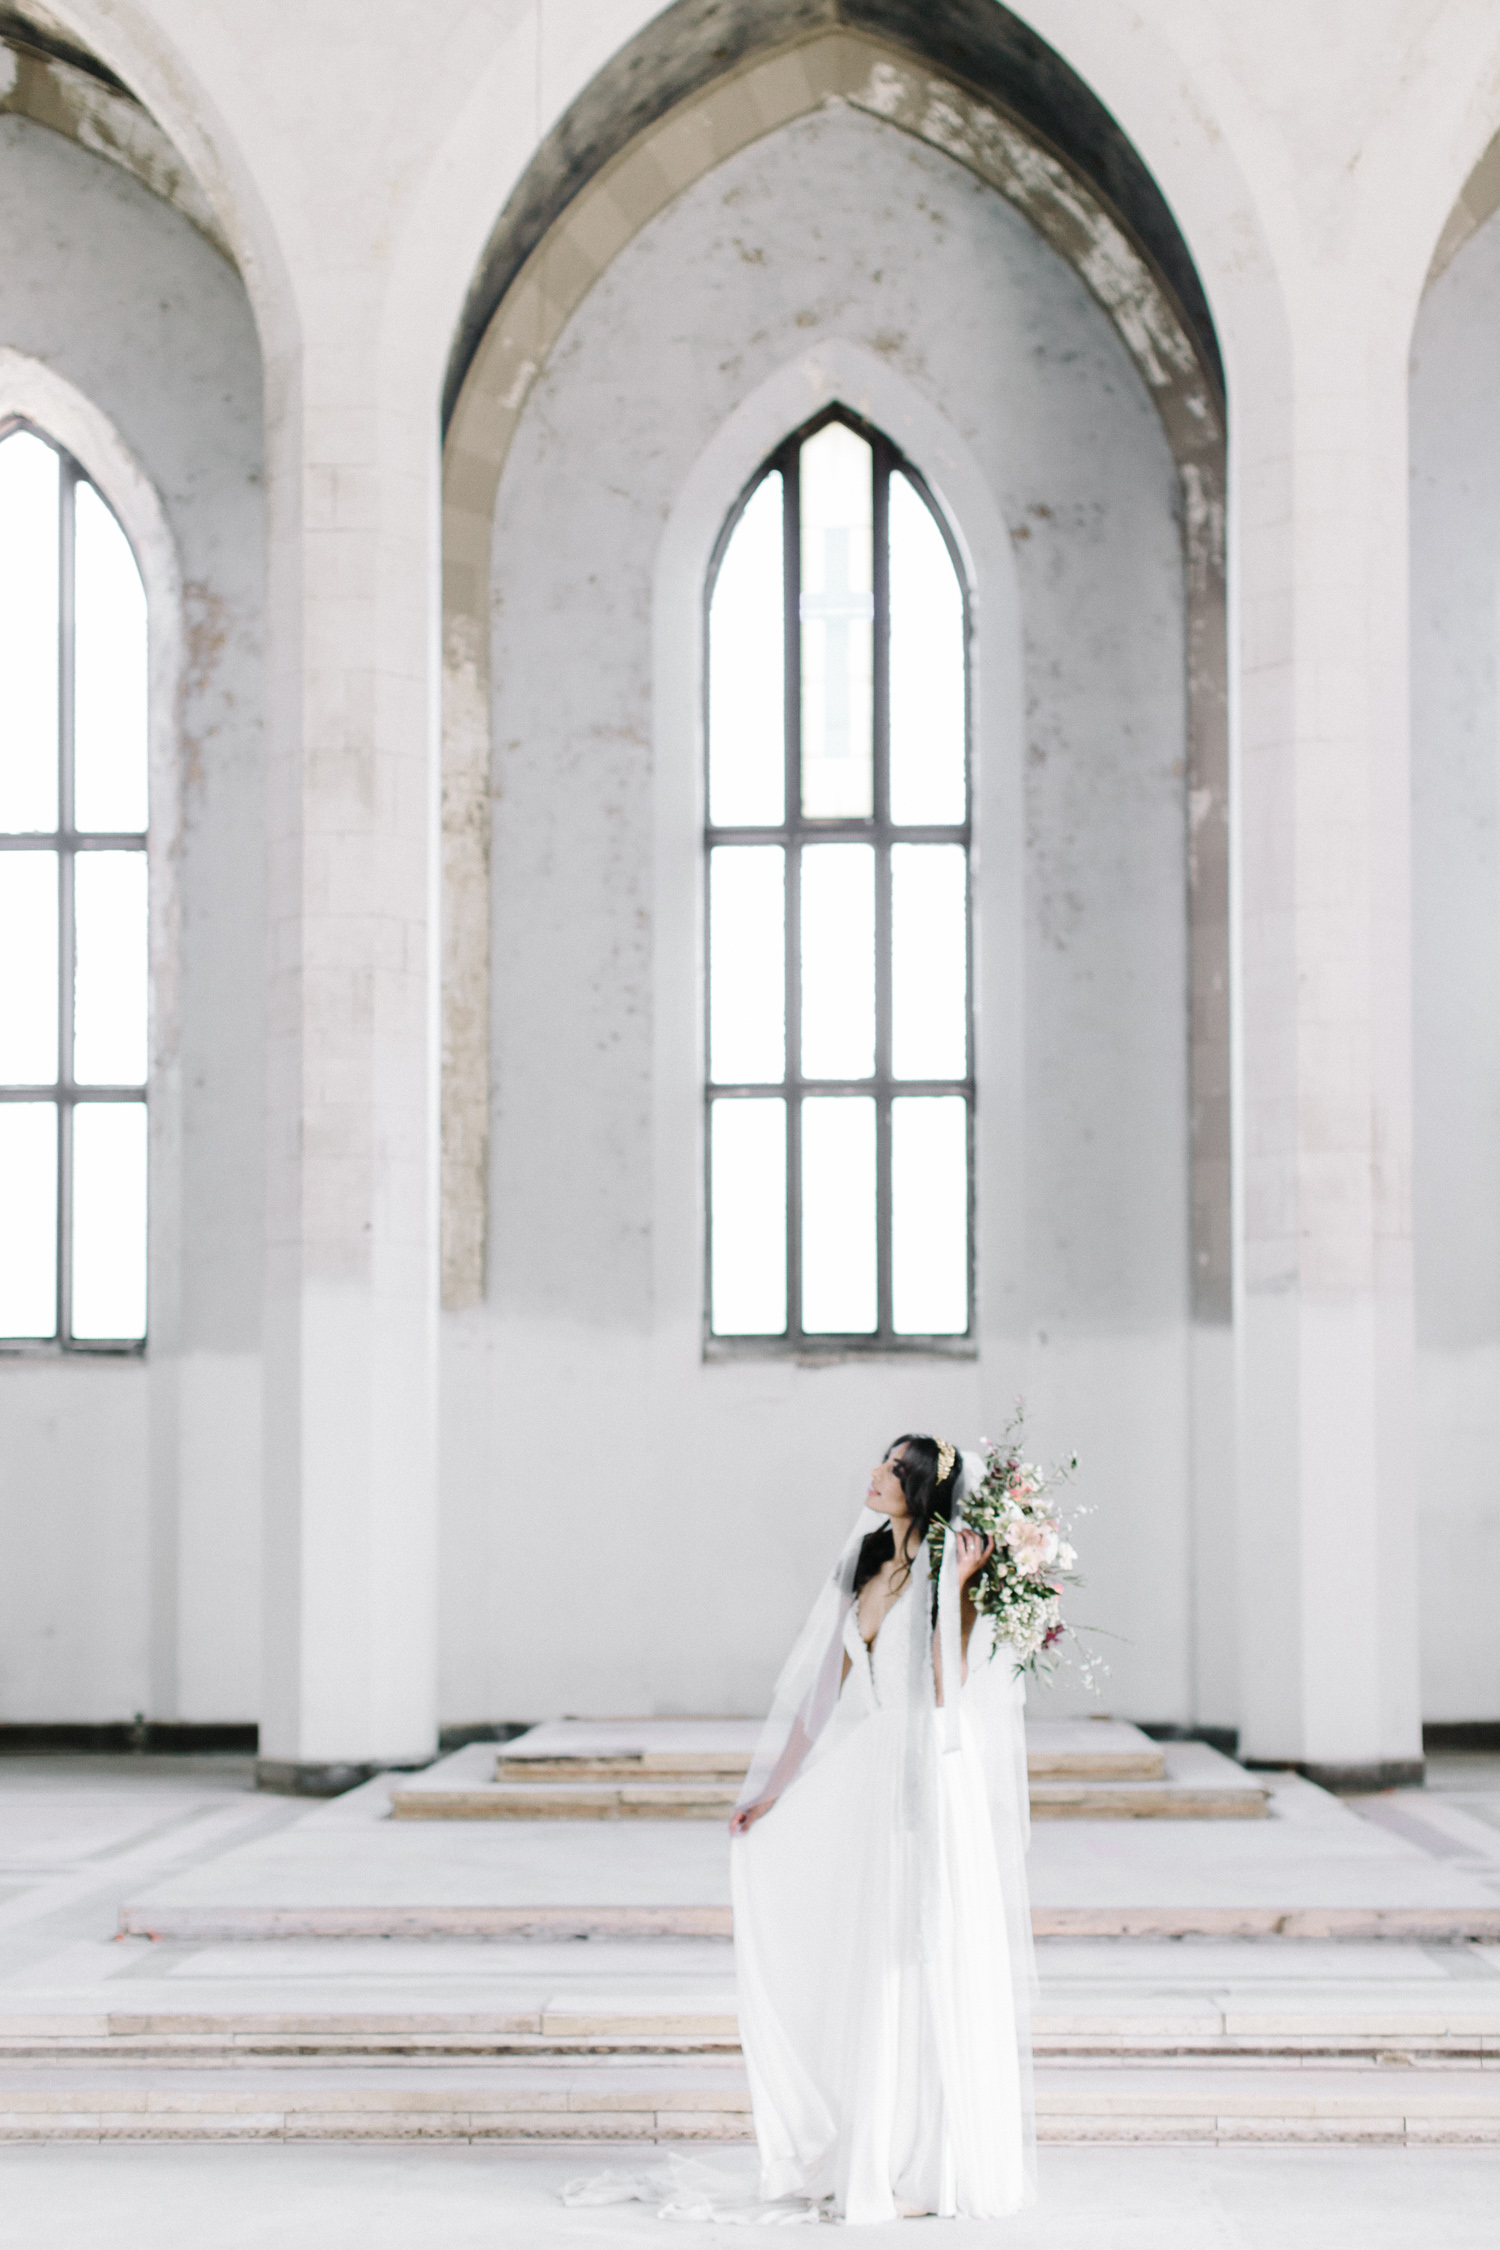 A bride gazes upward while holding her bouquet at her destination wedding in an abandoned cathedral